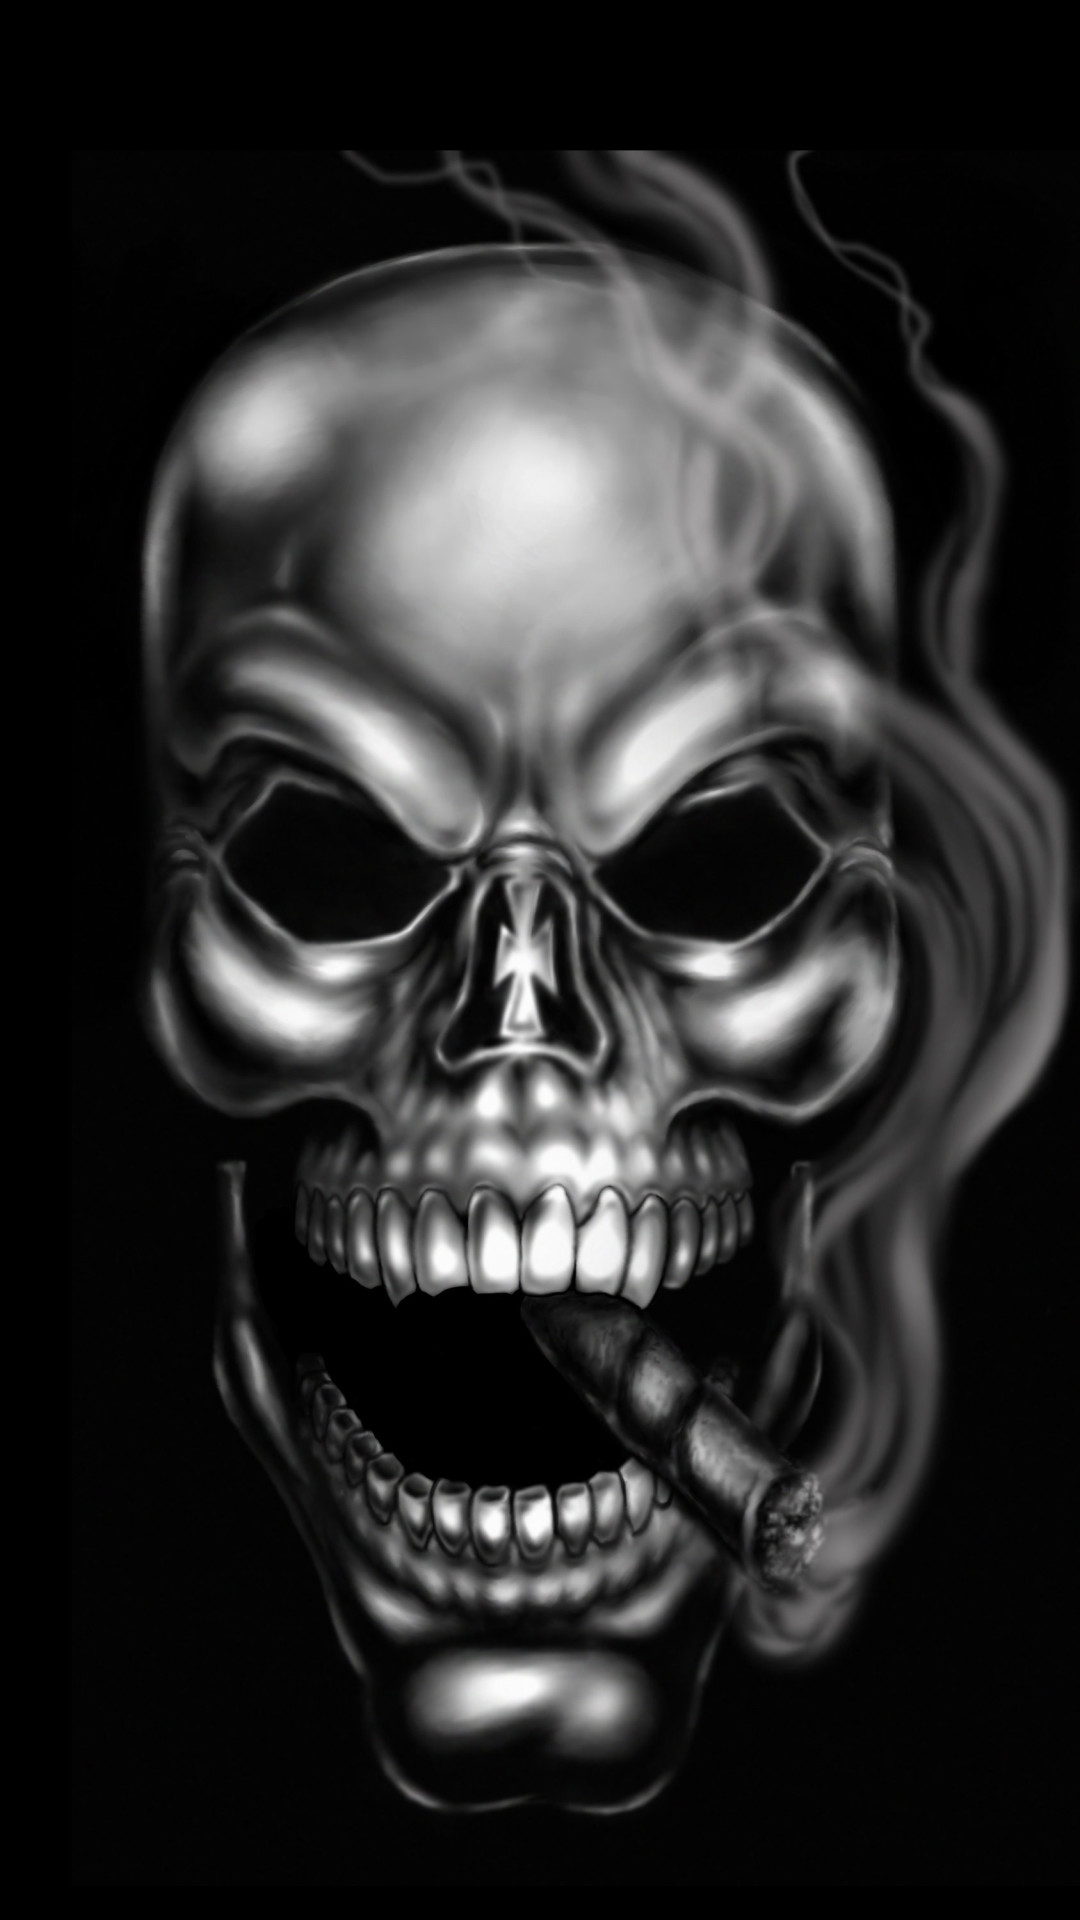 Skull Wallpaper for iPhone 67+ images